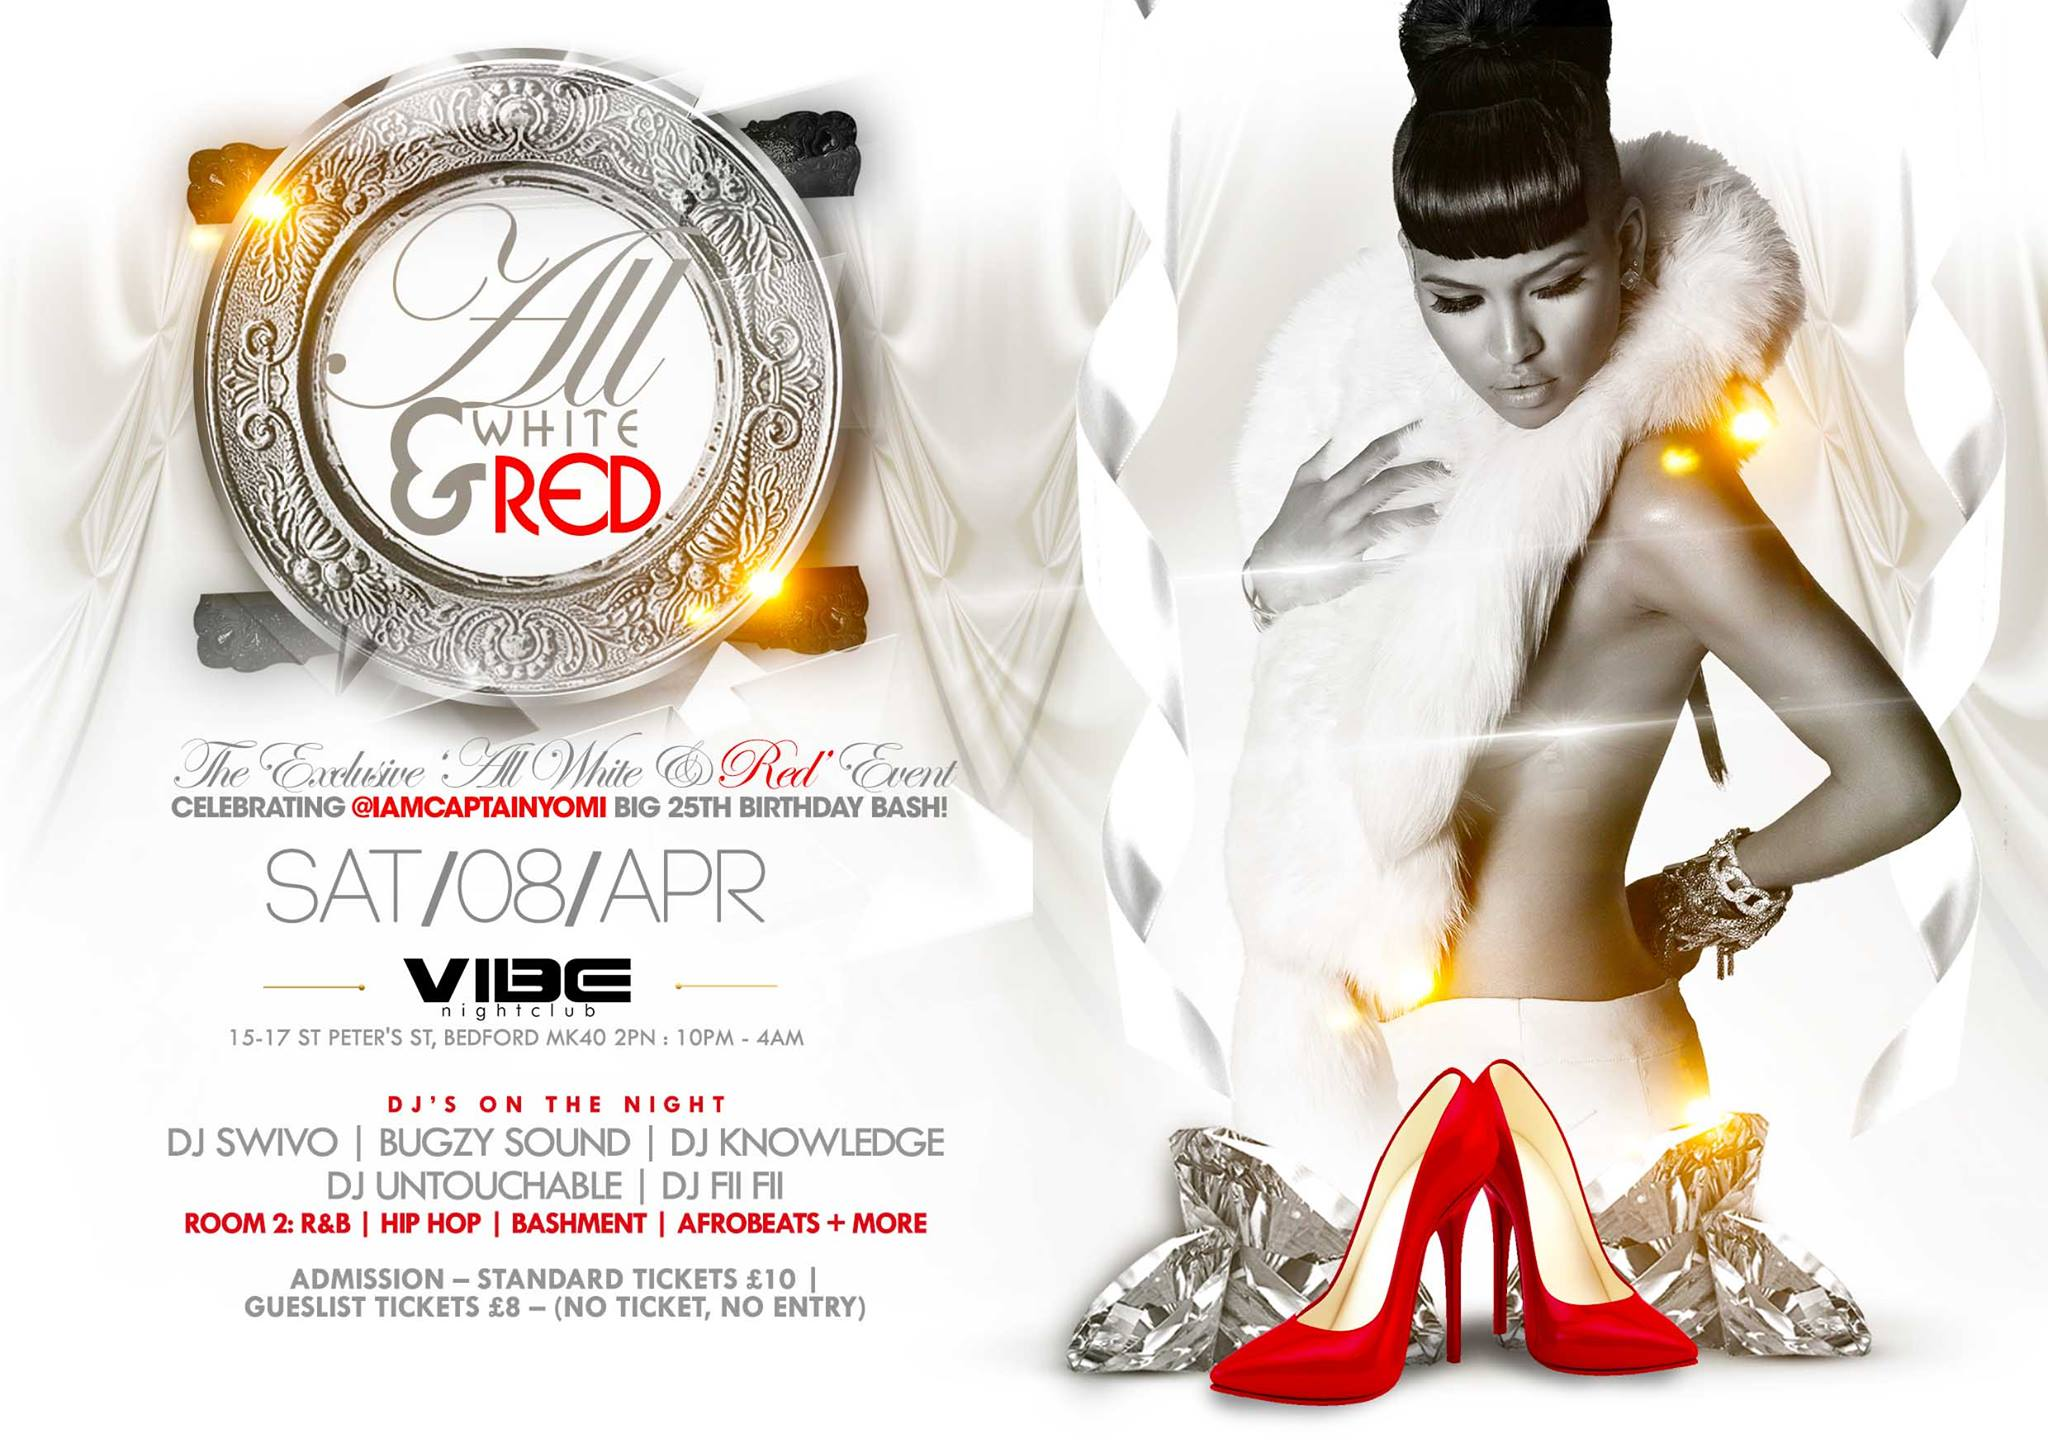 All White Red Touch Event Flyer